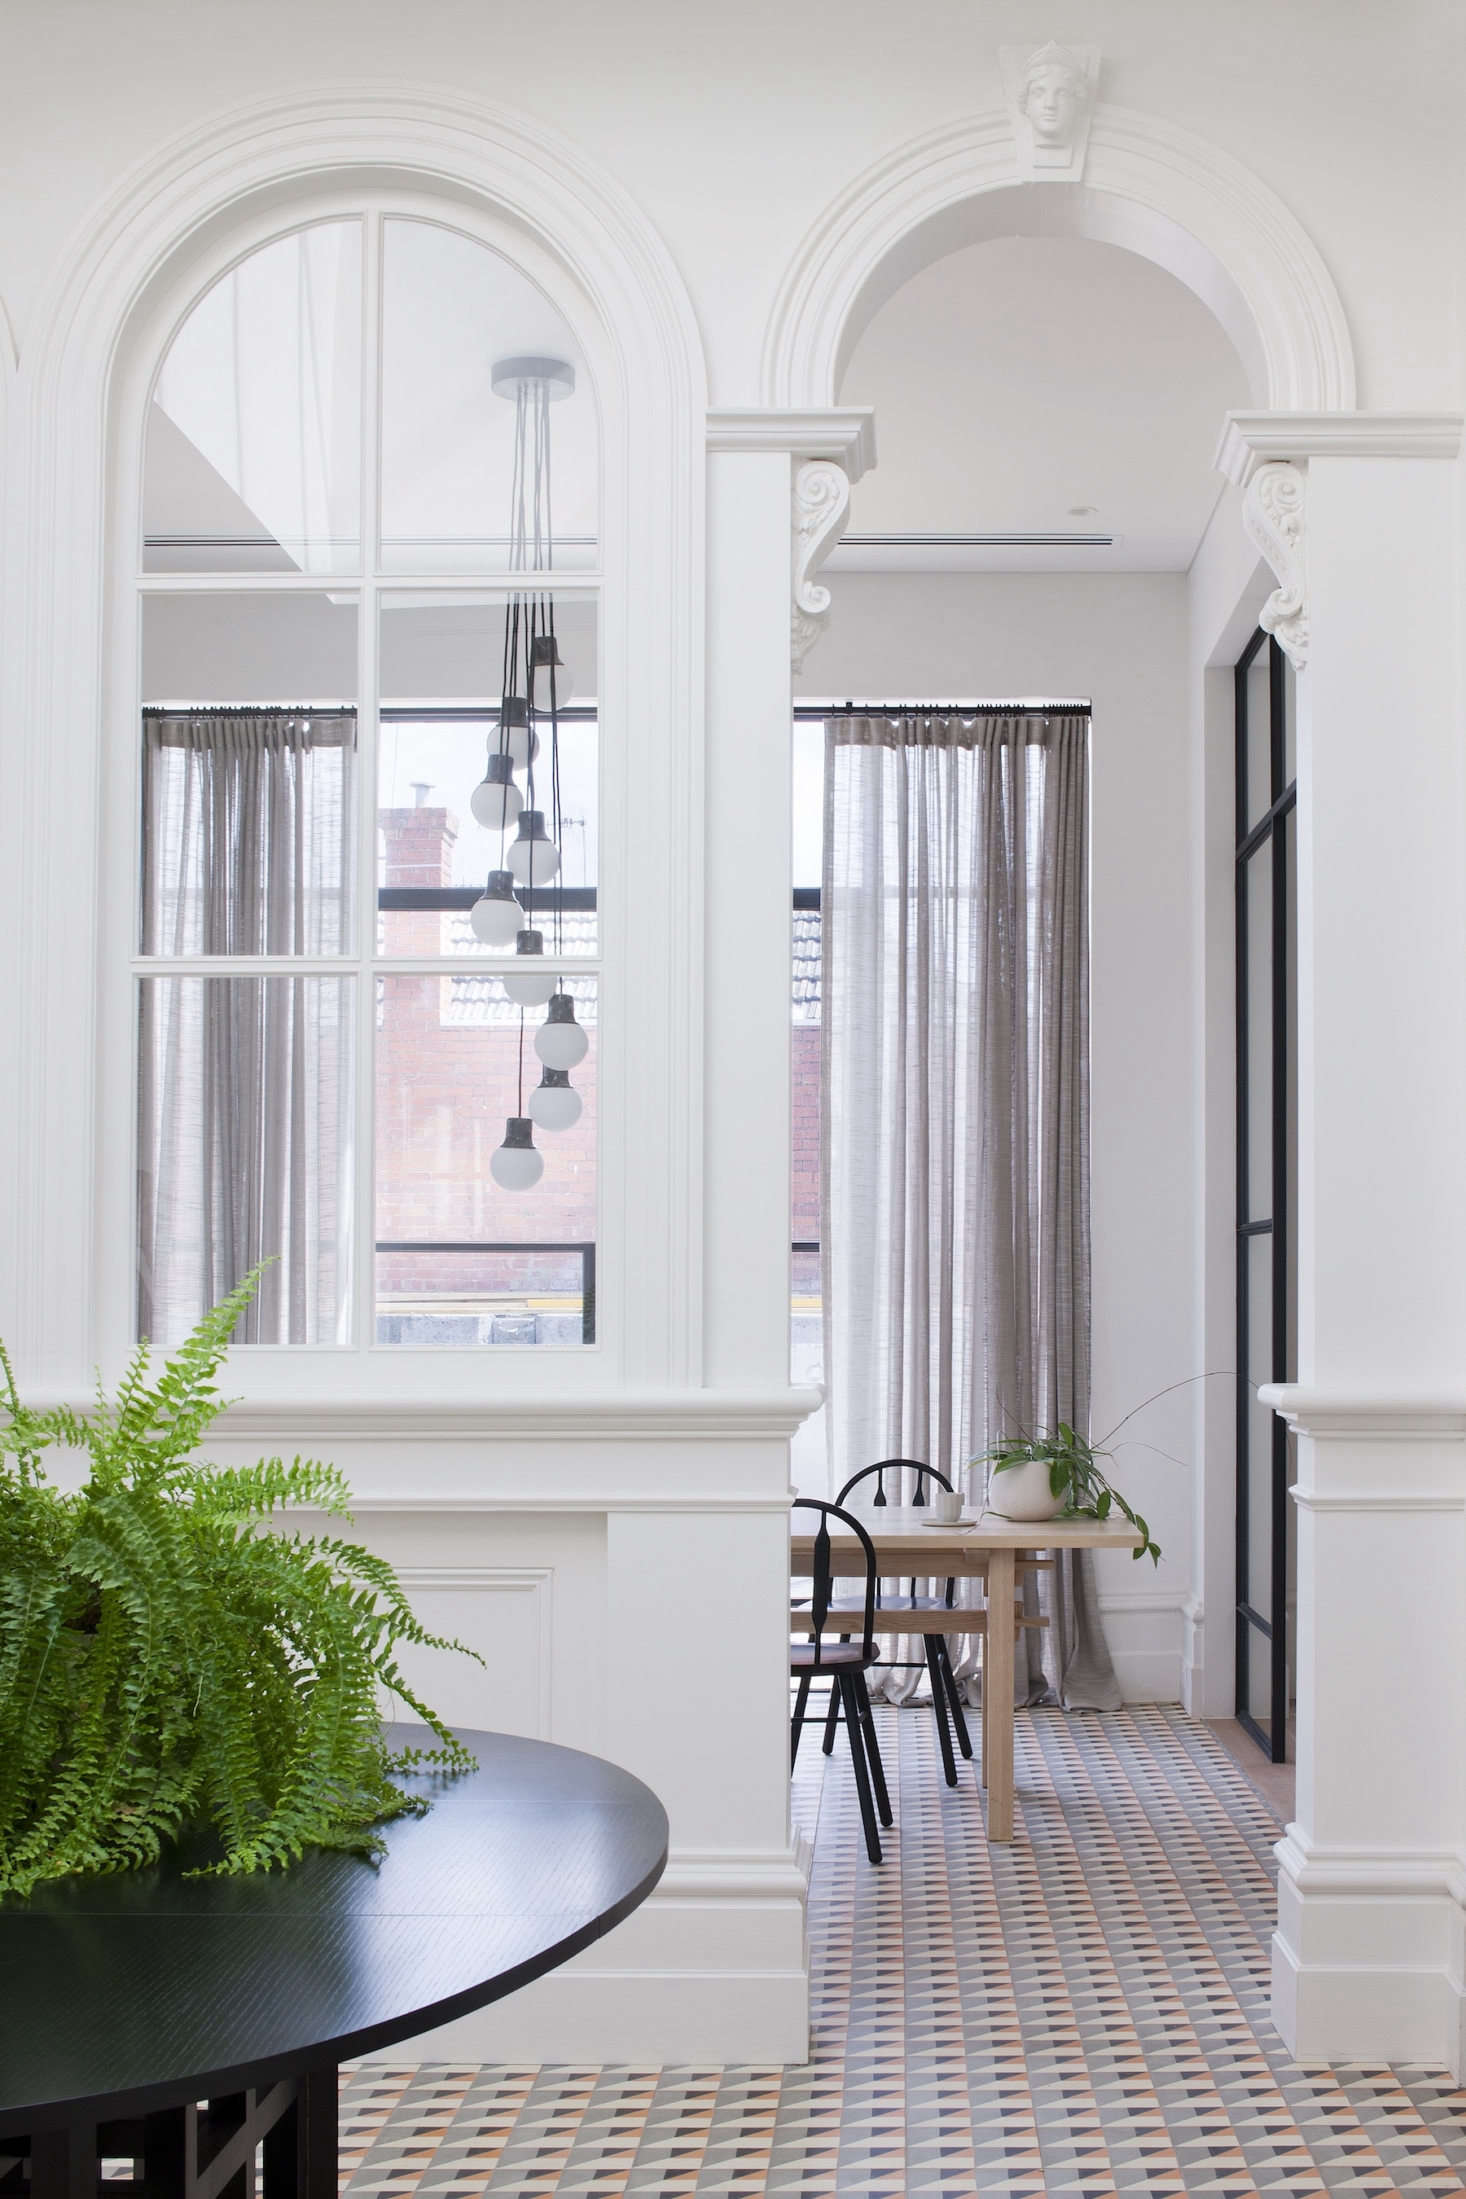 The designers retained the layout of the grand Victorian entryway, adding coral and blue geometric tile throughout the front room, paired with a black Cassina dining table.A new skylight allows natural light to pour in.